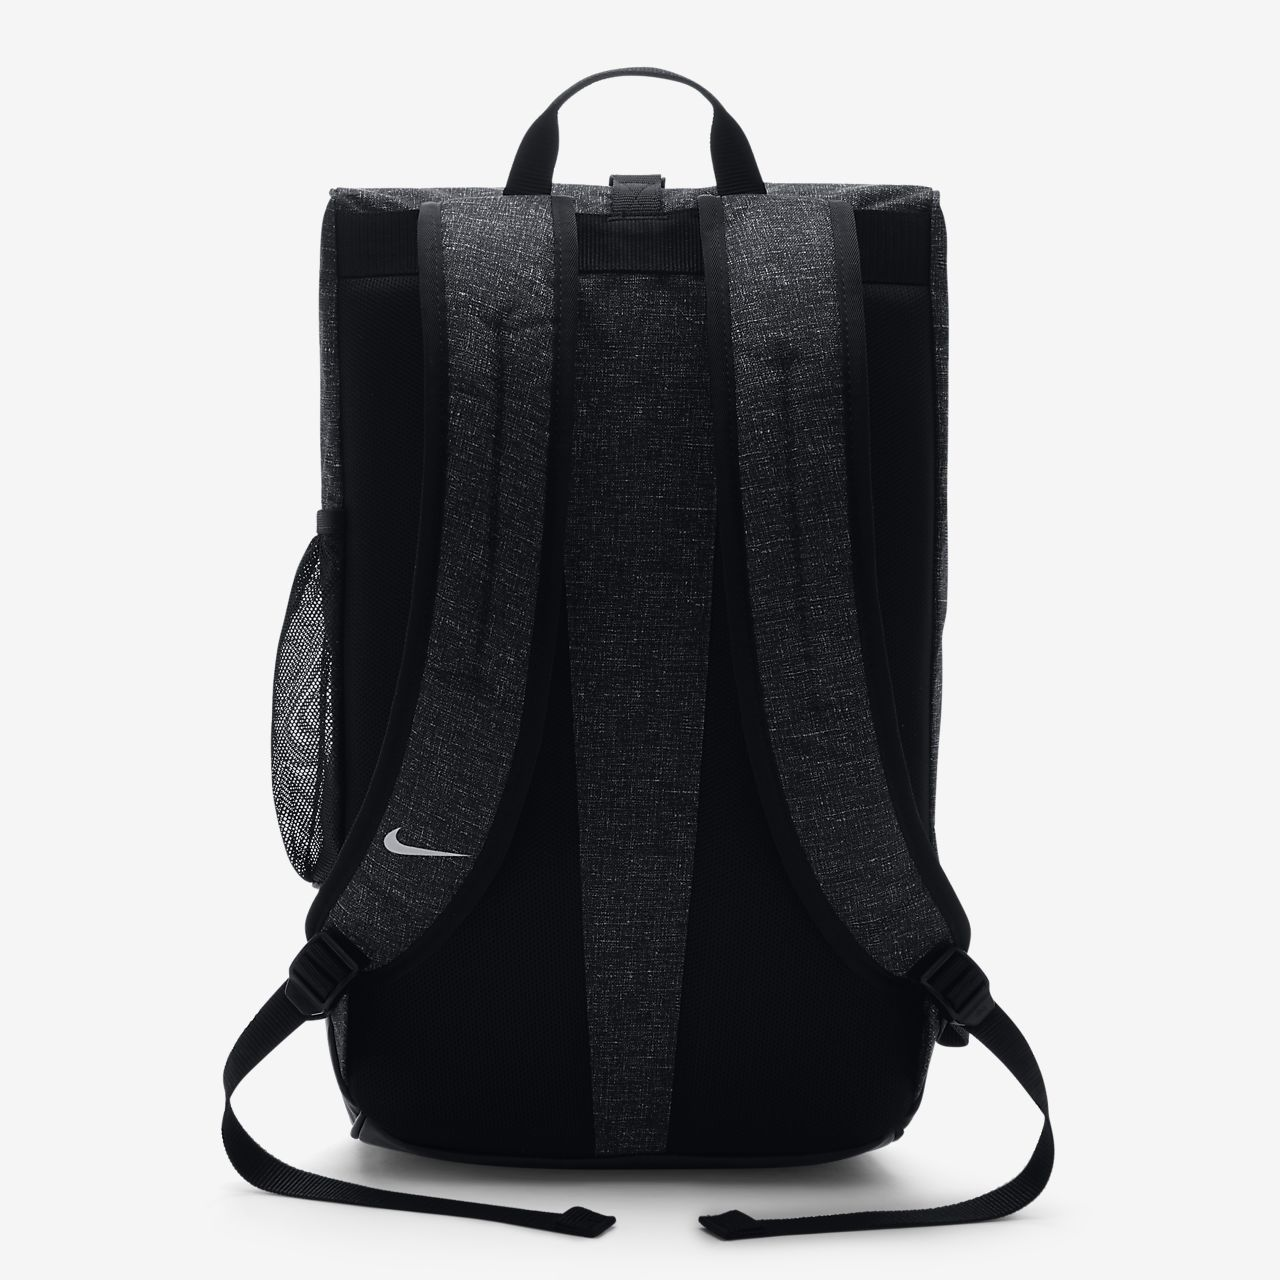 nike sport backpack gb. Black Bedroom Furniture Sets. Home Design Ideas